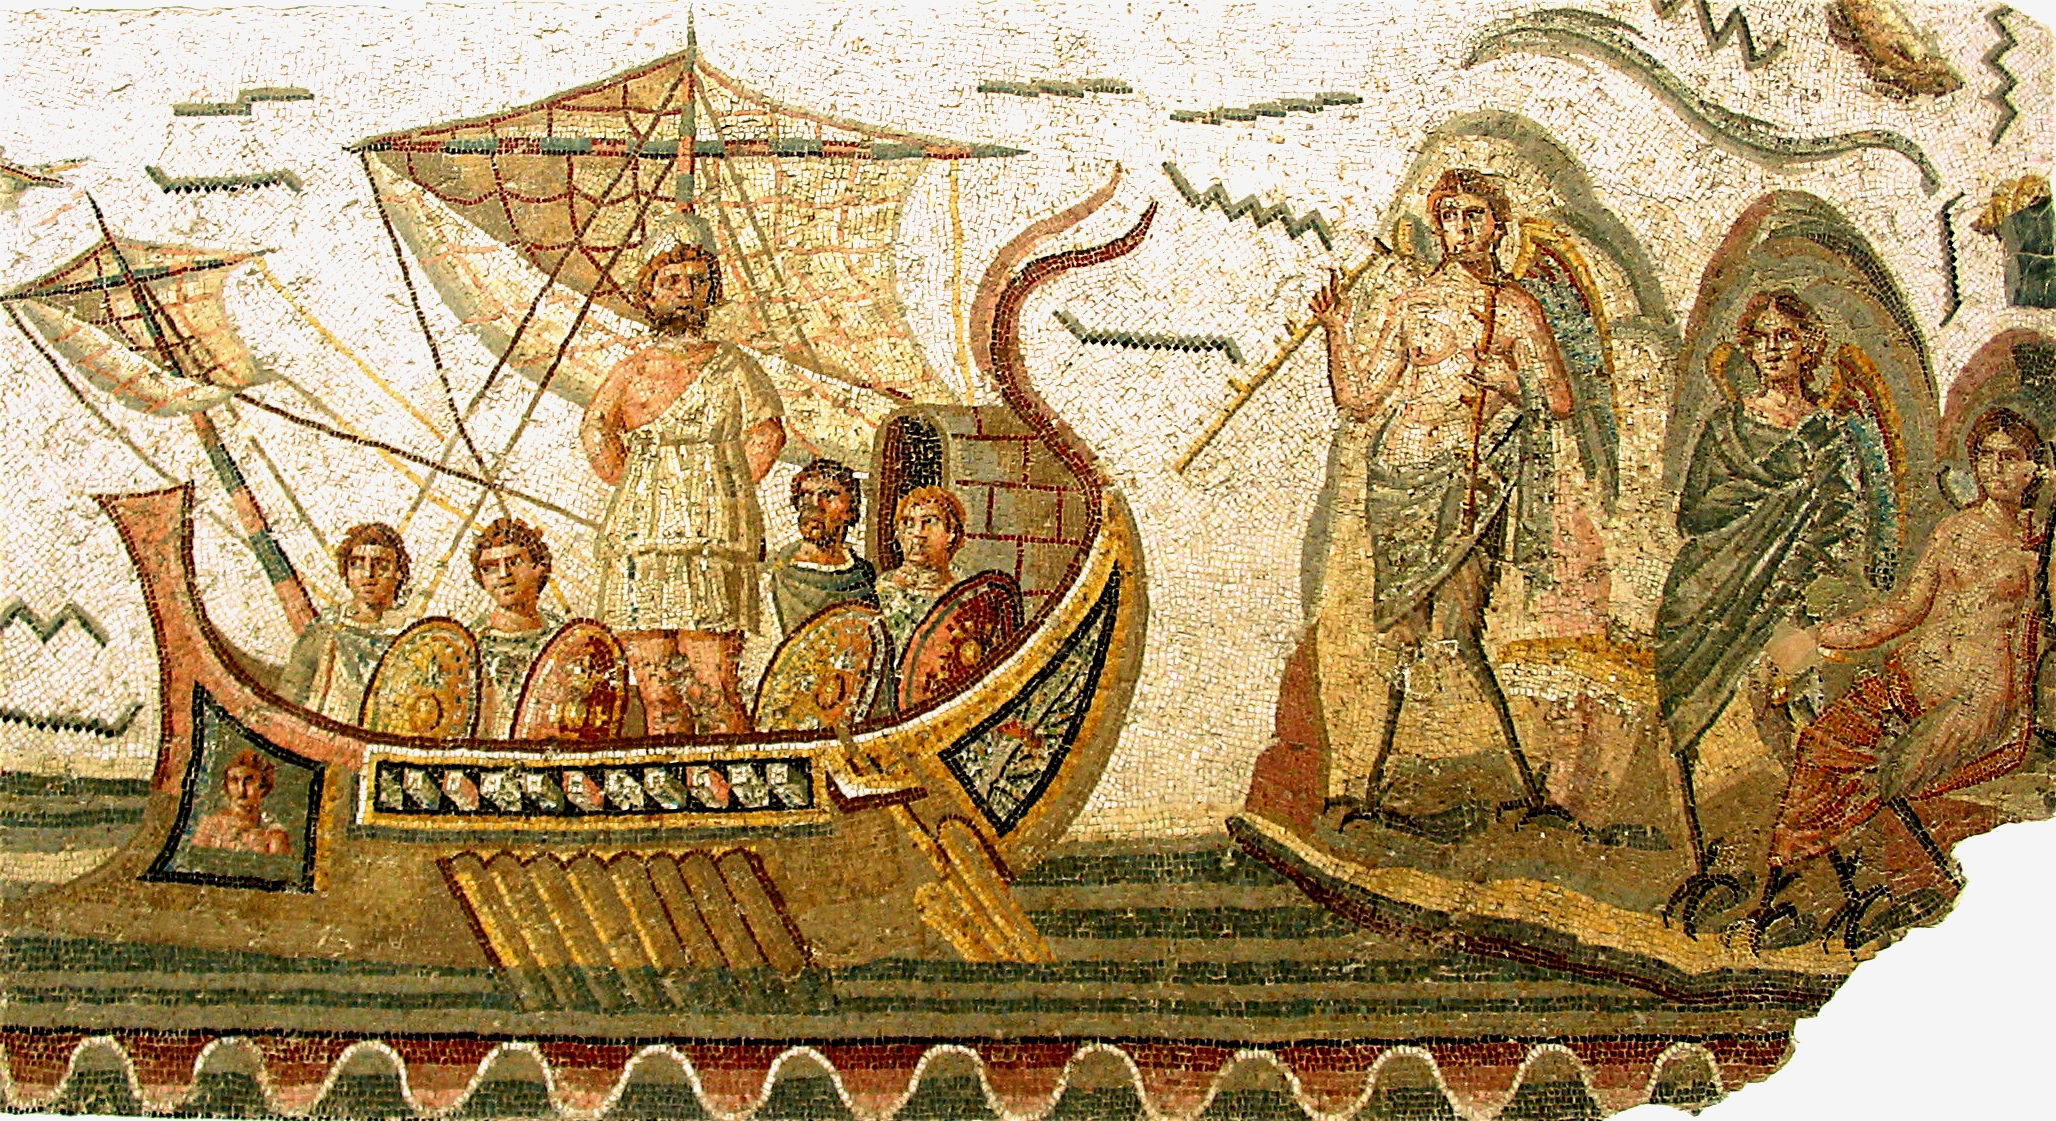 Odysseus and the Sirens, a Roman Ulixes mosaic at the Bardo National Museum ( لمتحف الوطني بباردو) in Tunis, Tunisia, 2nd century AD.